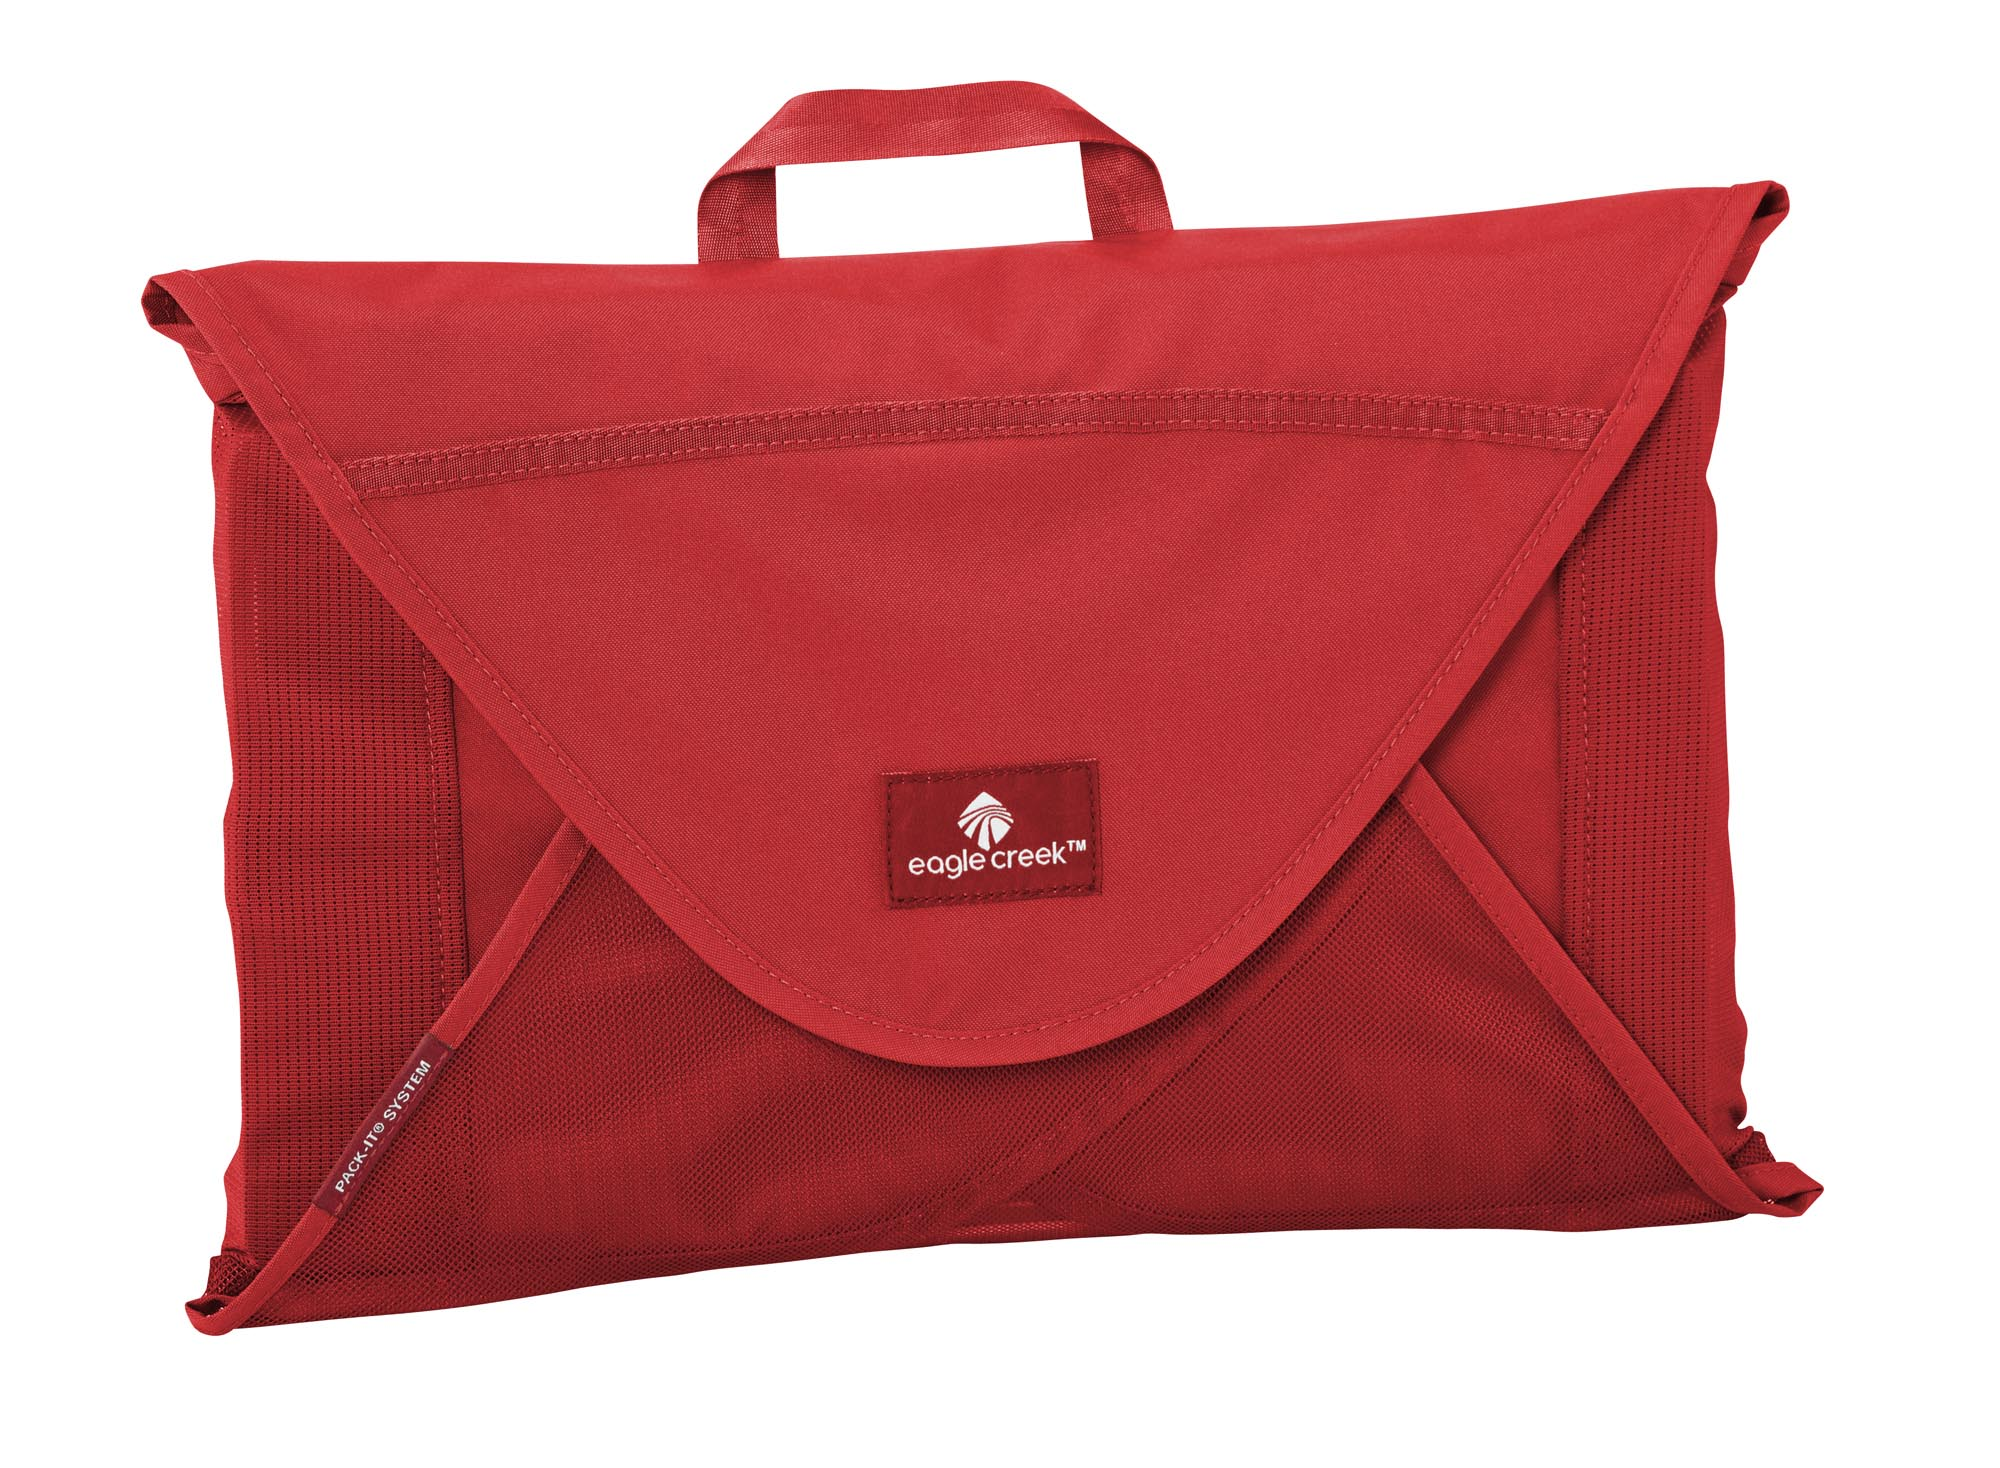 EagleCreek - Pack-It Garment Folder Small Red Fire - Packing Bags -